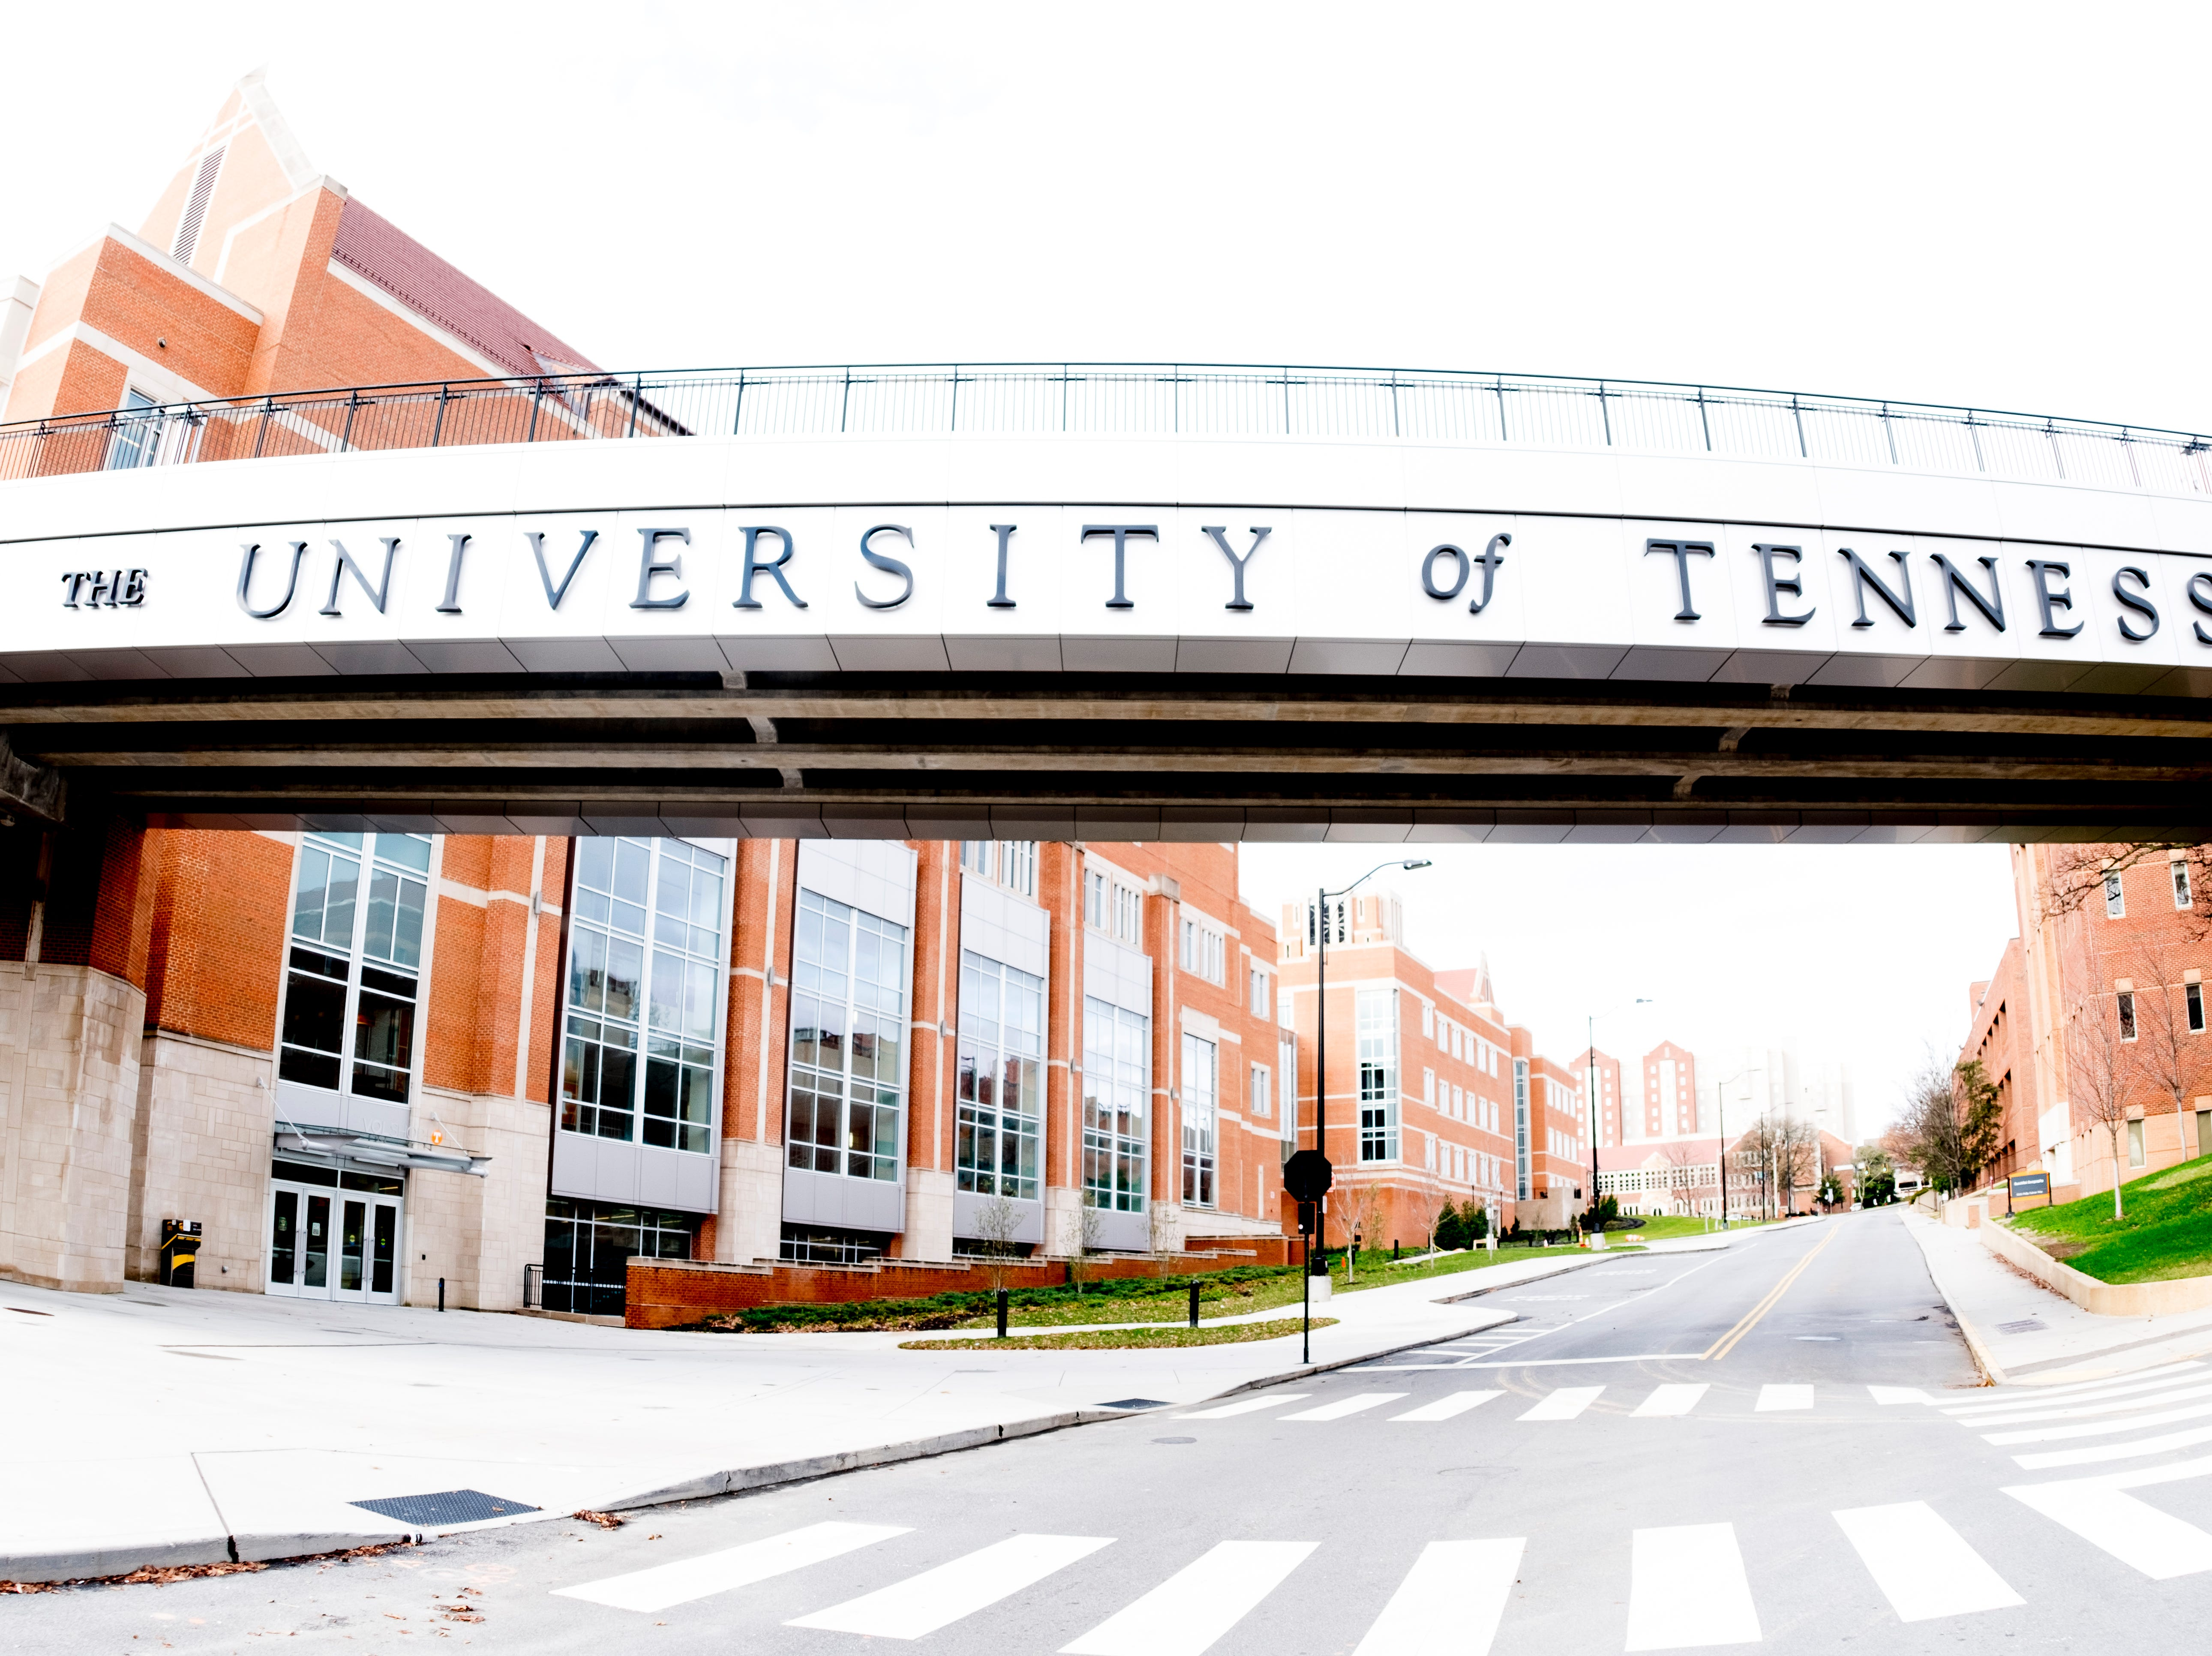 Pedestrian Bridge along Philip Fulmer Way on the University of Tennessee campus in Knoxville, Tennessee on Tuesday, January 1, 2019.